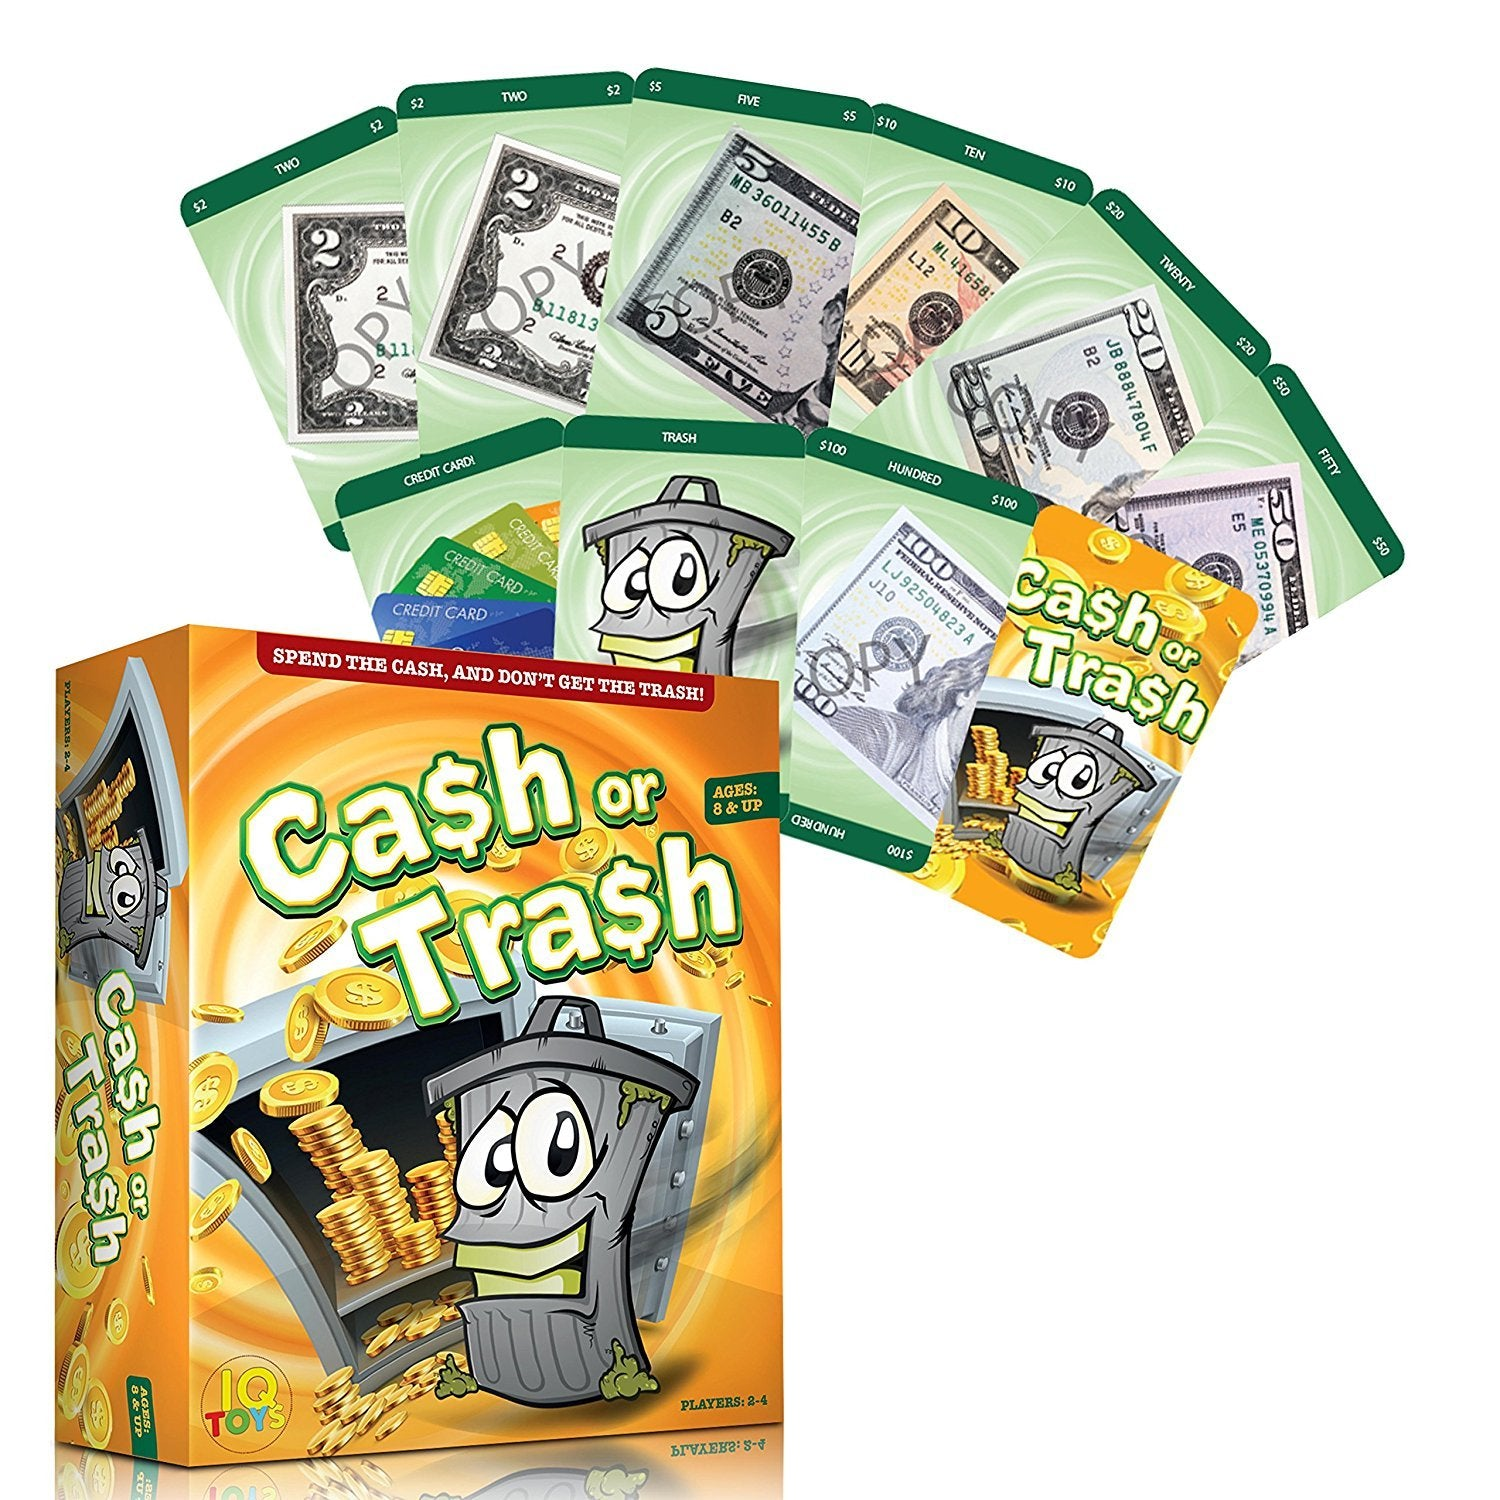 Cash or Trash - Sneaky and Hilarious Card Game